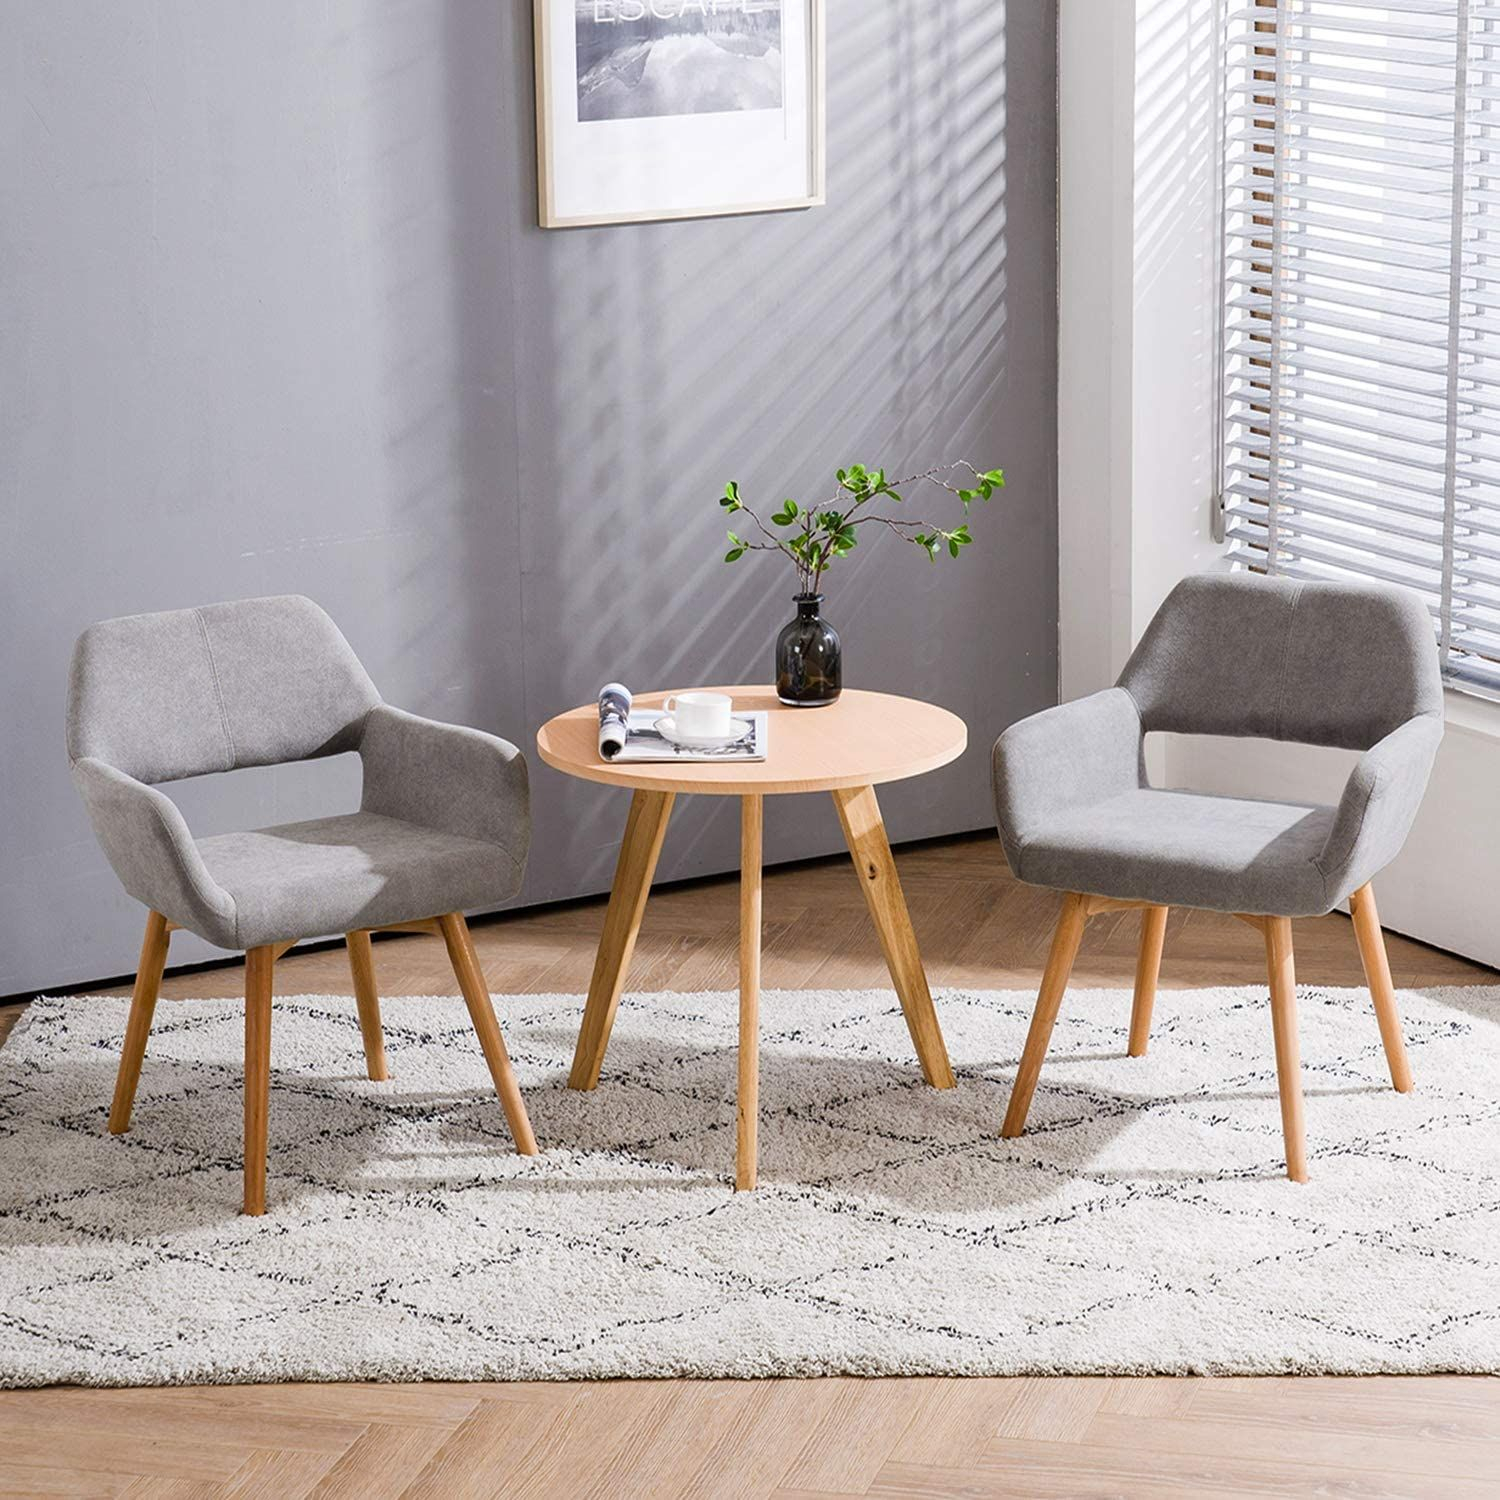 Homy Grigio Modern Living Dining Room Accent Arm Chairs Club Intended For Brister Swivel Side Chairs (View 14 of 15)